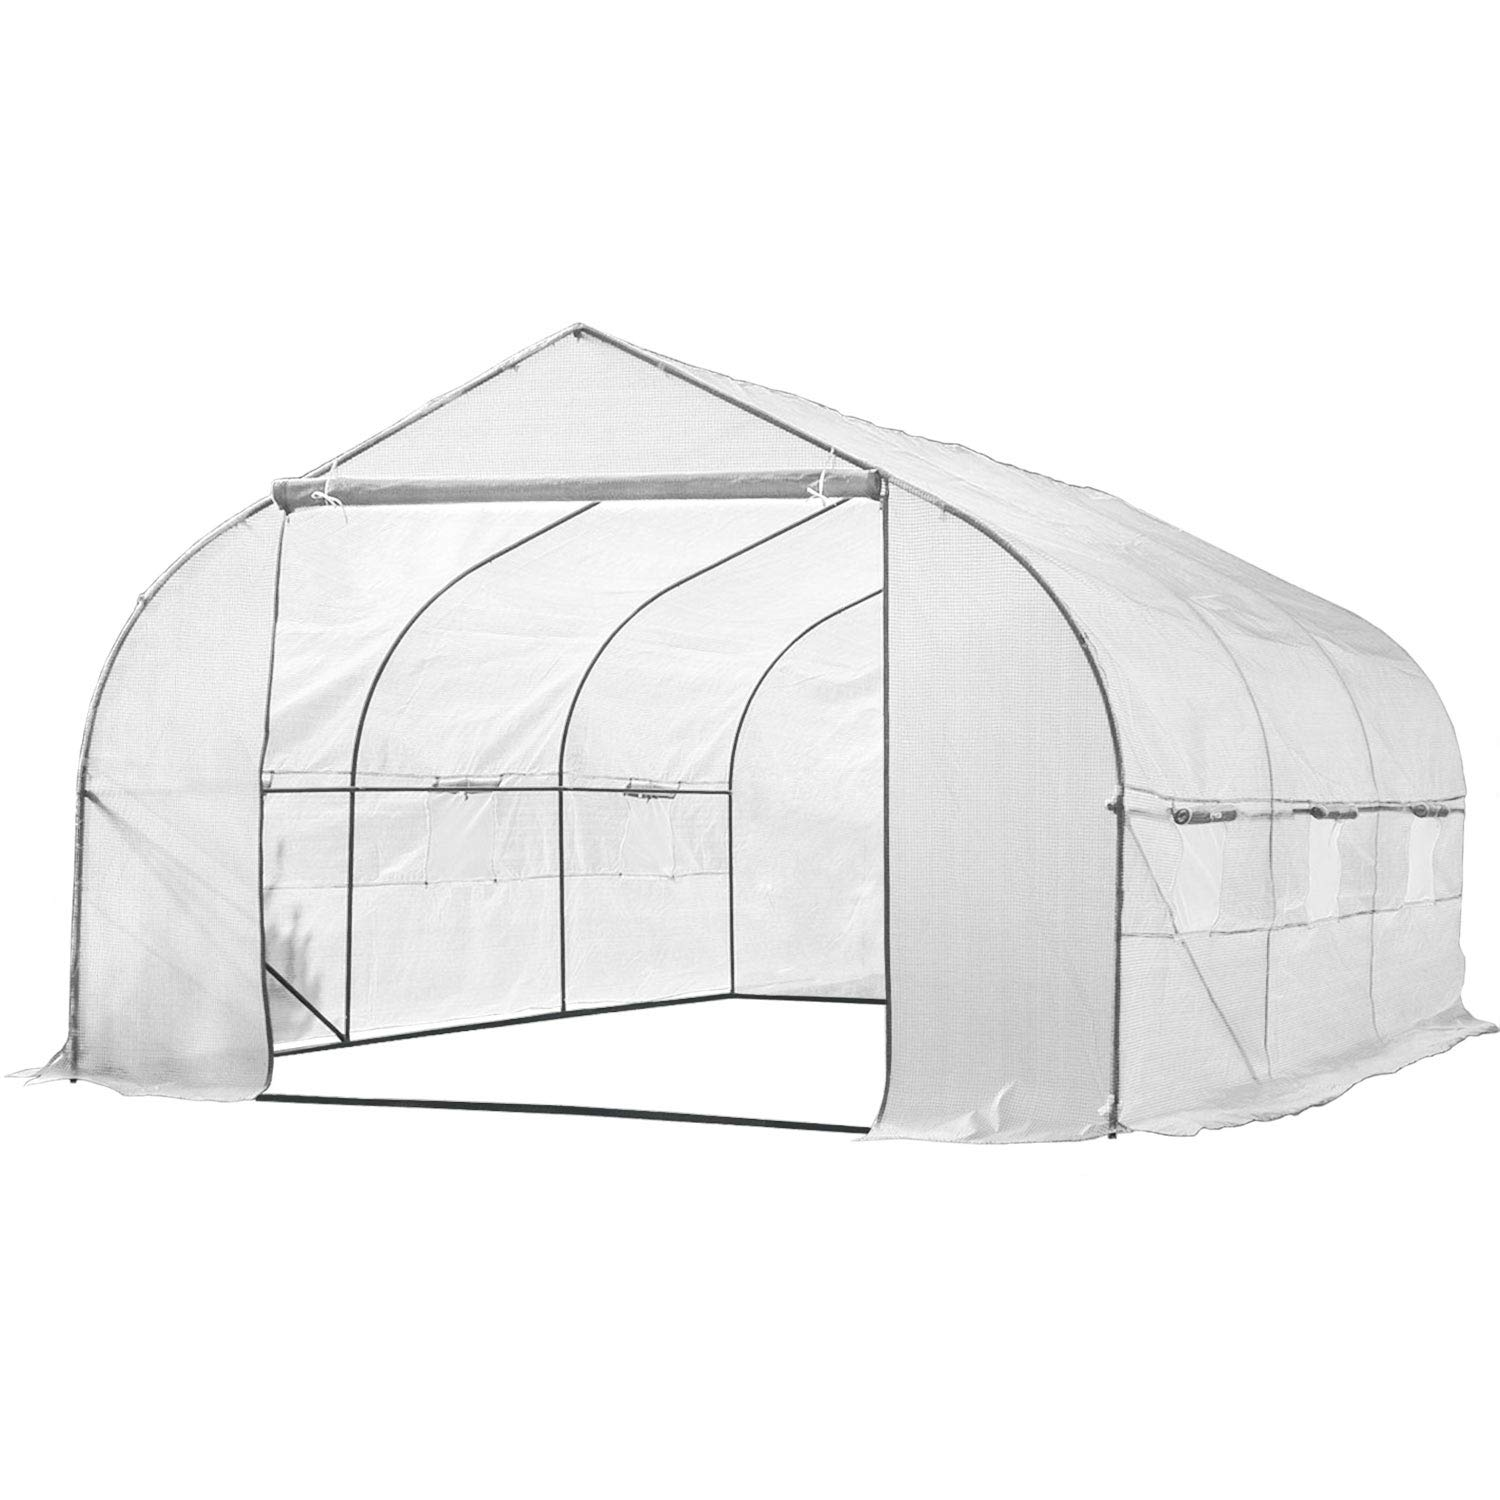 Biltek 11ft Portable Walk-in Garden Greenhouse Outdoor Green House for Fruits, Vegetables, Plants, and Flowers - 11' Long x 10' Wide x 7' High